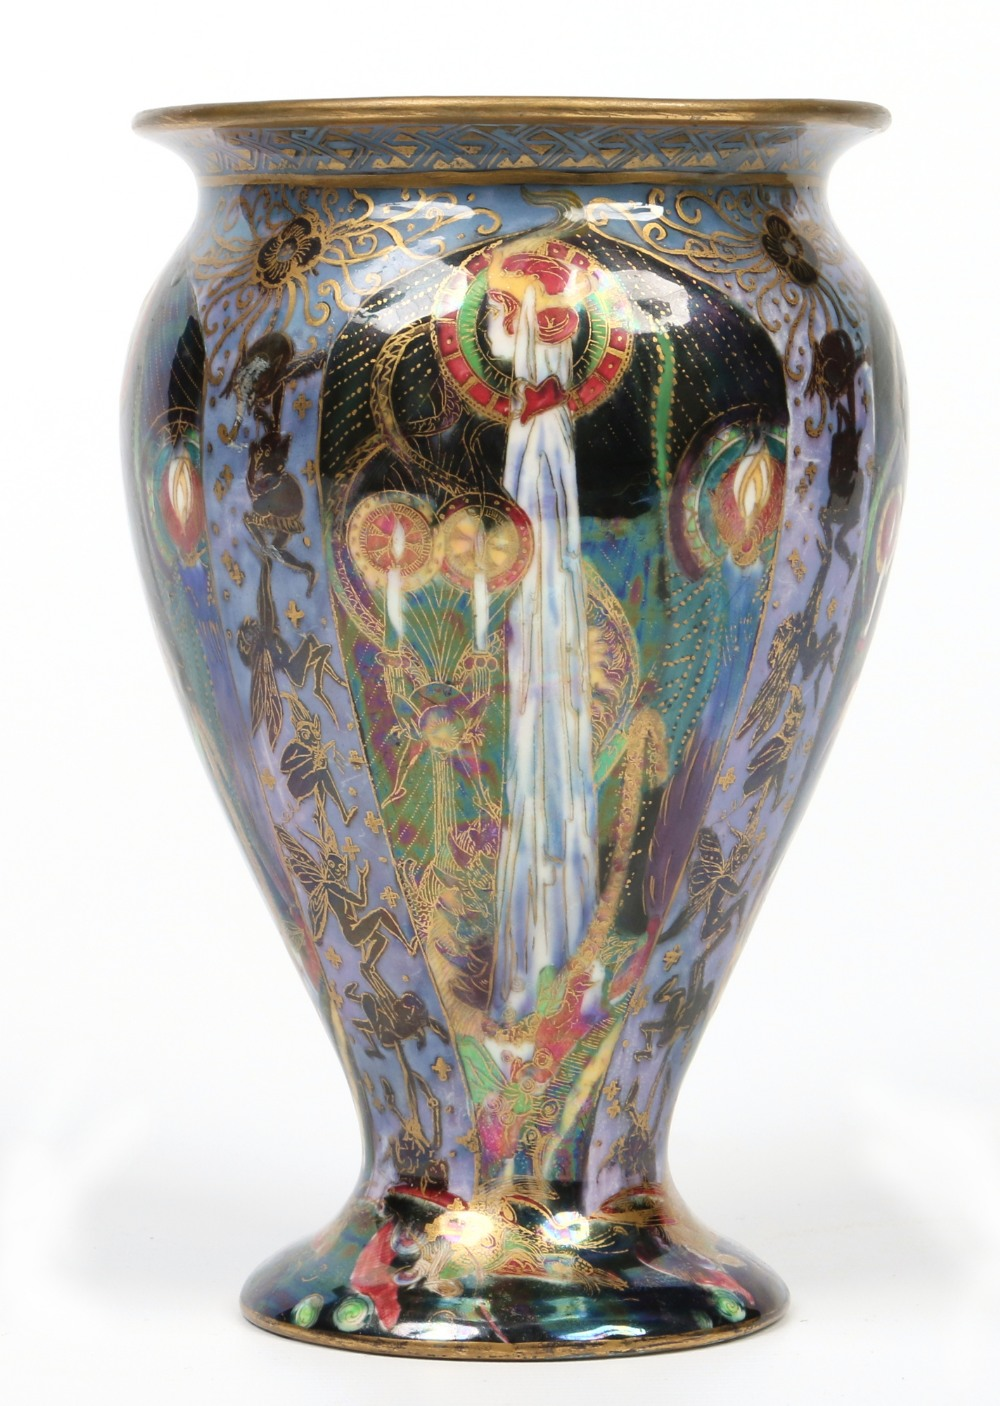 A Wedgwood fairyland lustre vase by Daisy Makeig-Jones. Decorated in the candlemass pattern. Printed marks Z5157, 22.75cm. Estimate: £1 000 - £1 500